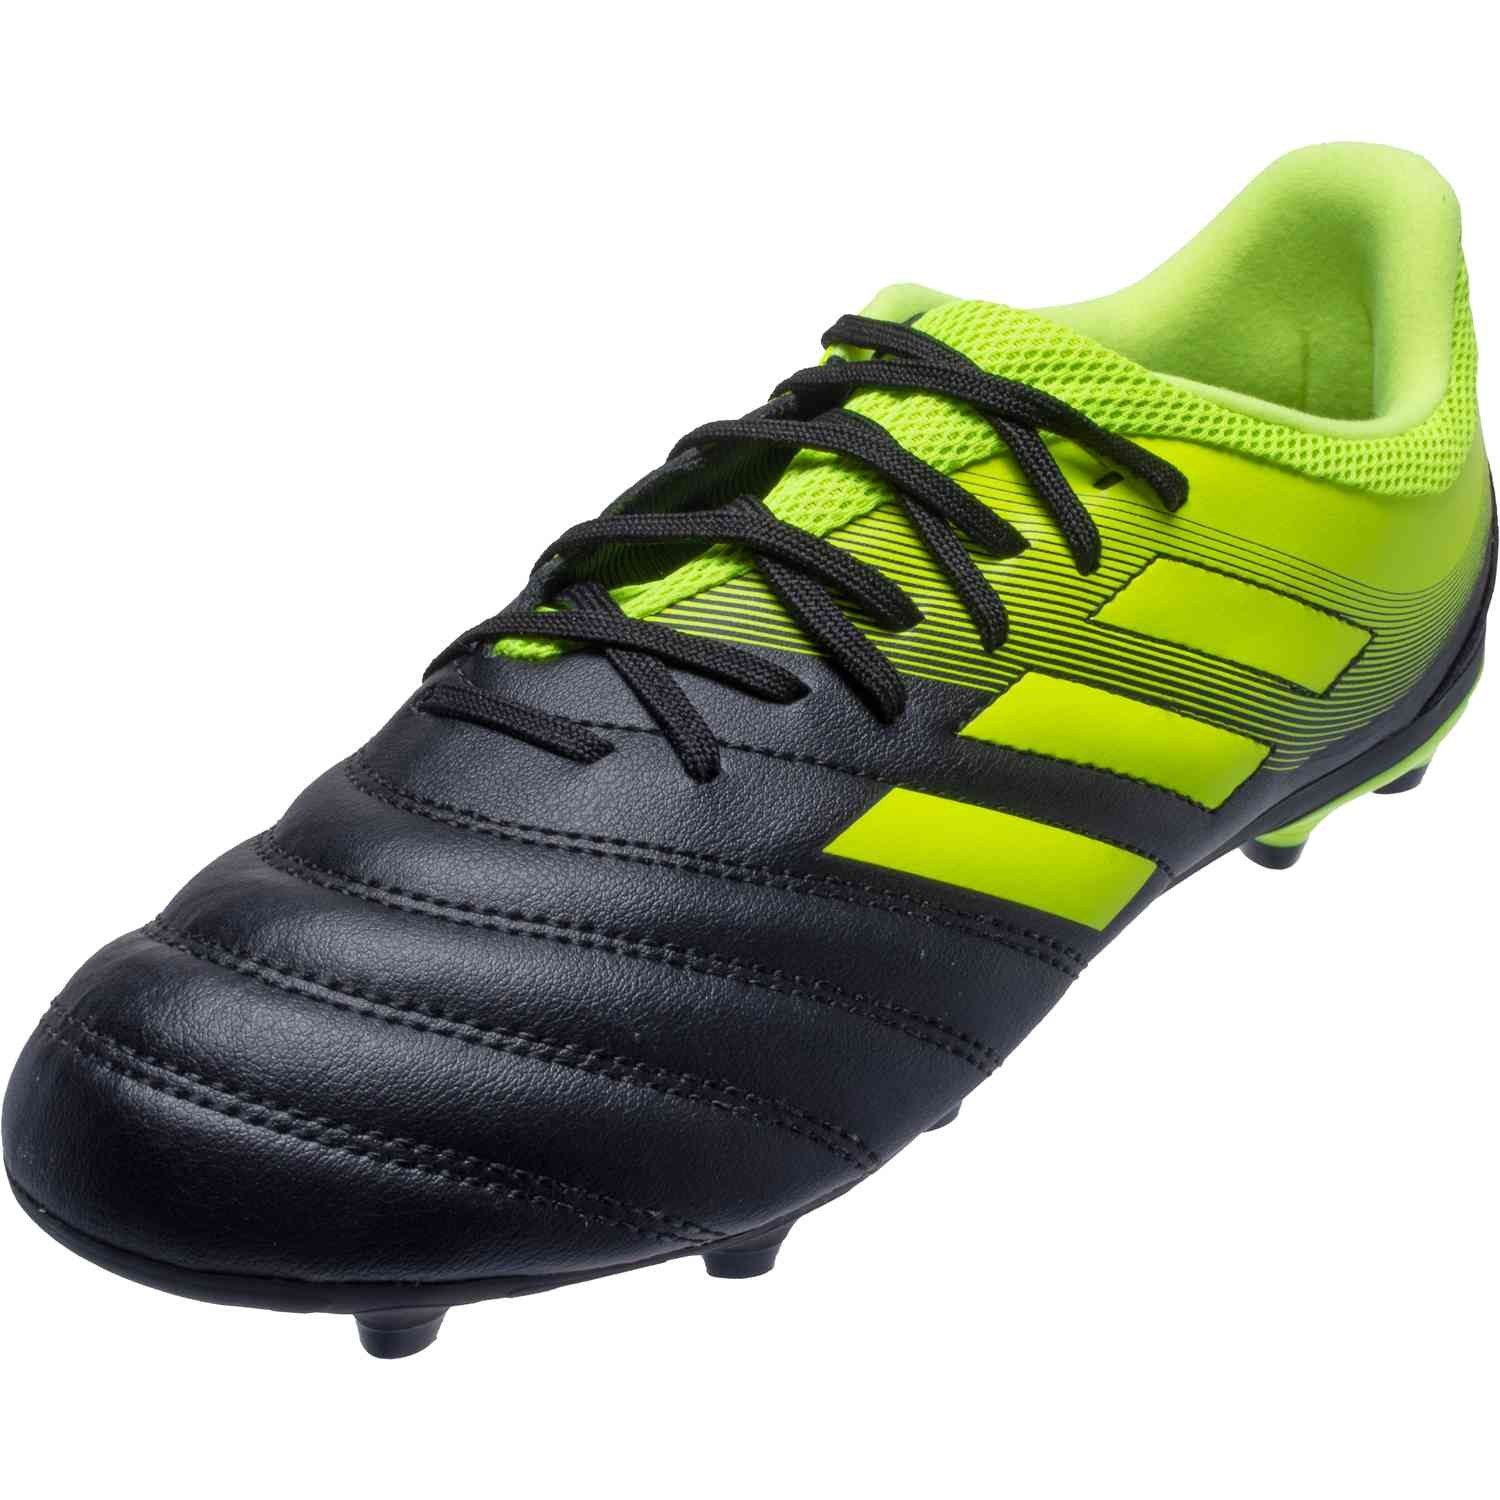 super popular 86538 f8a2a Home  Youth Soccer  Youth Soccer Cleats